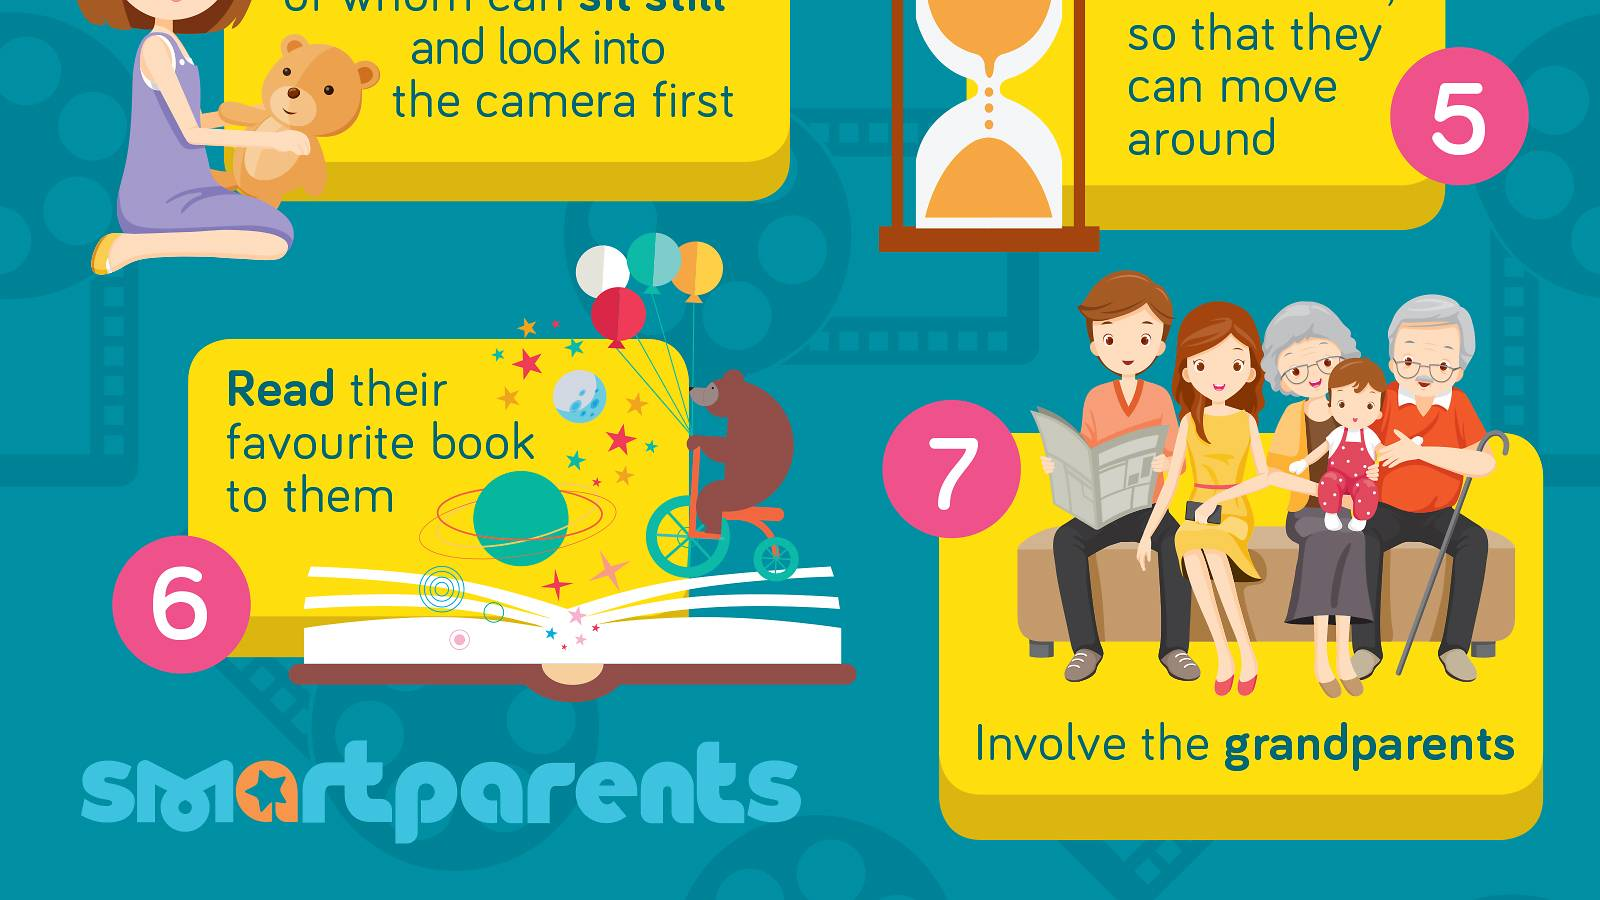 Babies-7-terrific-tips-for-capturing-perfect-shots-of-your-tot-[Infographic]_03